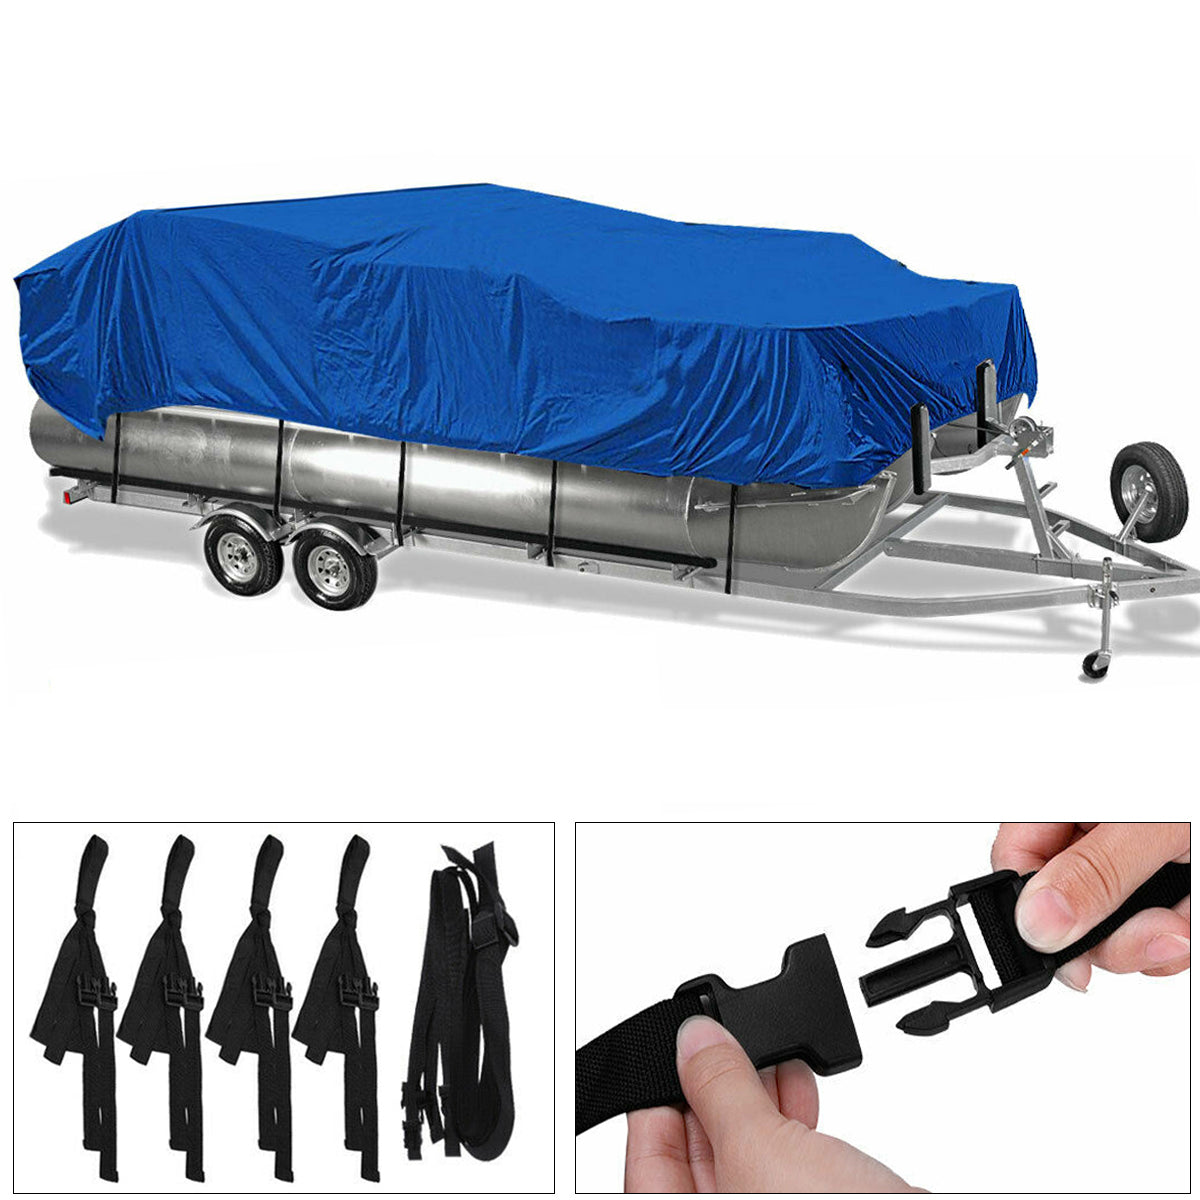 17-20Ft / 21-24Ft Heavy Duty 210D Waterproof Pontoon Boat Cover Fish Ski Beam